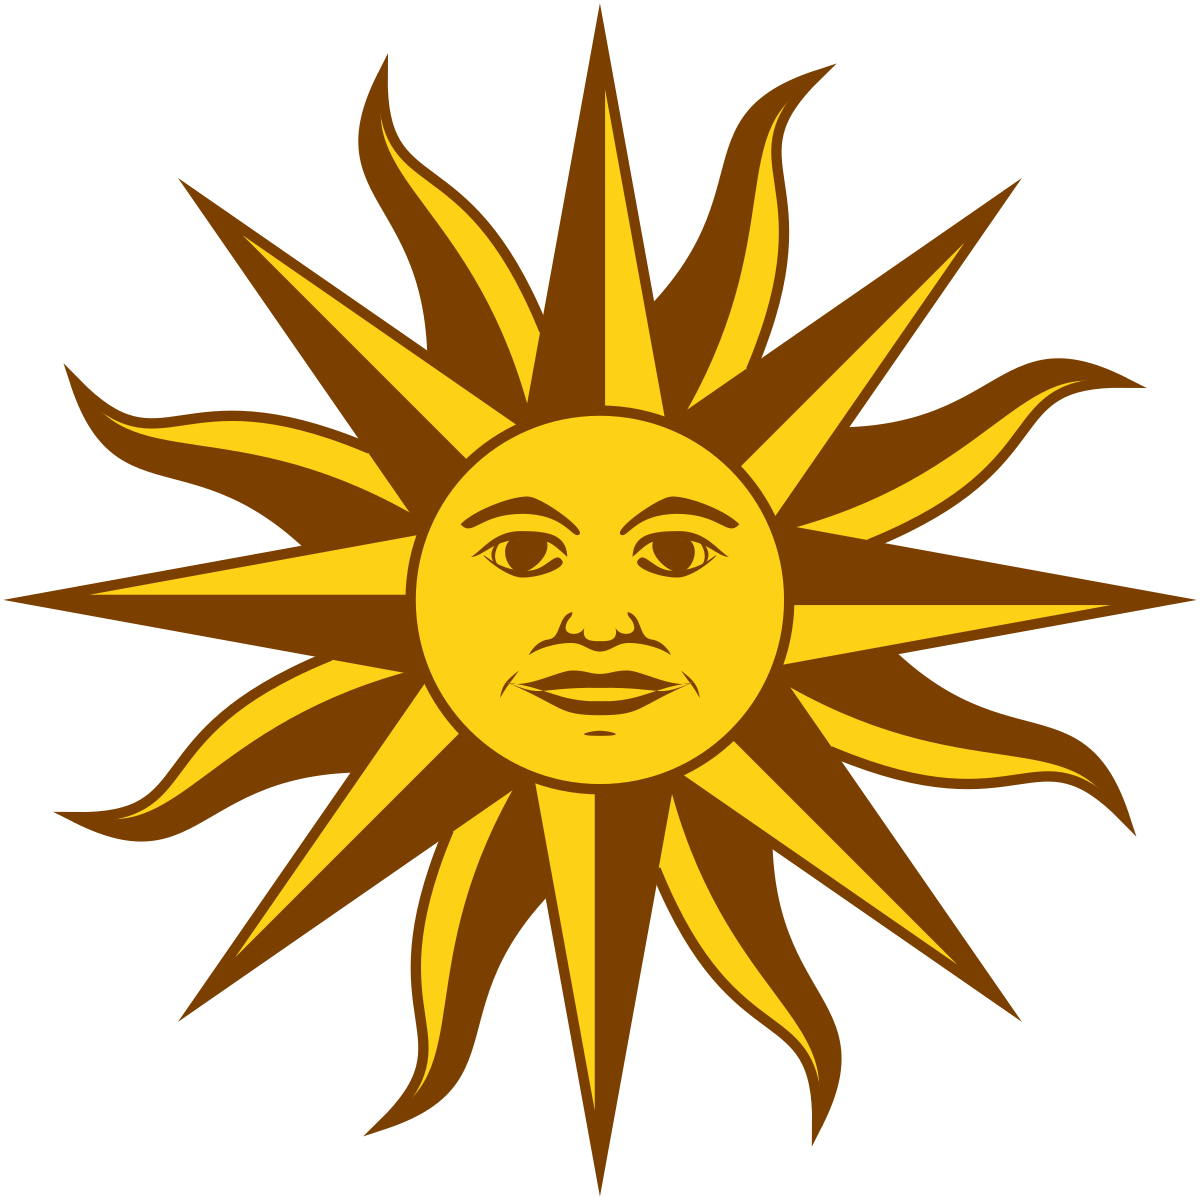 Sun of may clipart banner royalty free download Sun of May - Simple English Wikipedia, the free encyclopedia banner royalty free download